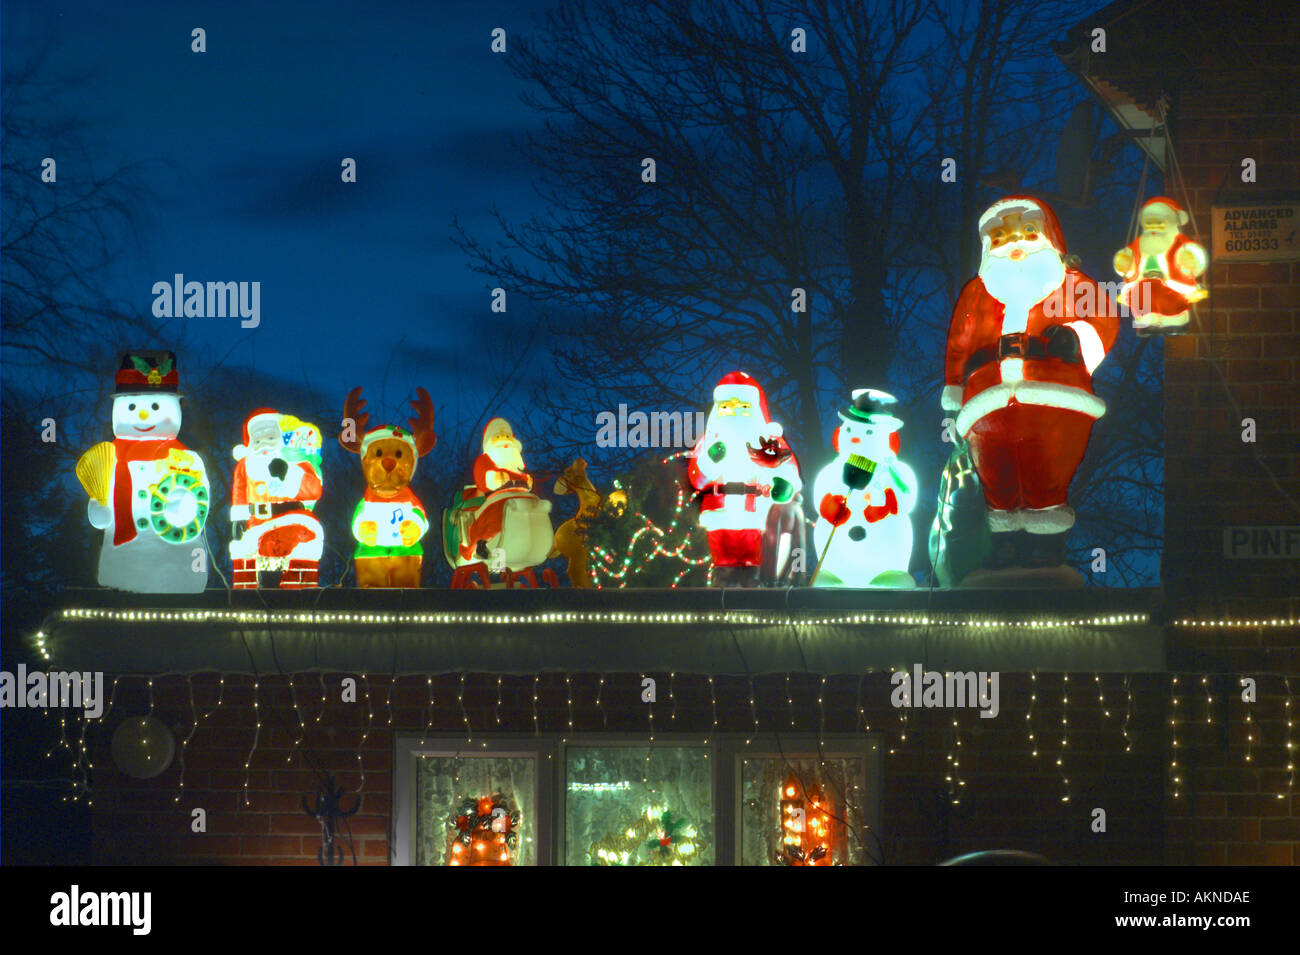 external christmas decorations on roof in garden